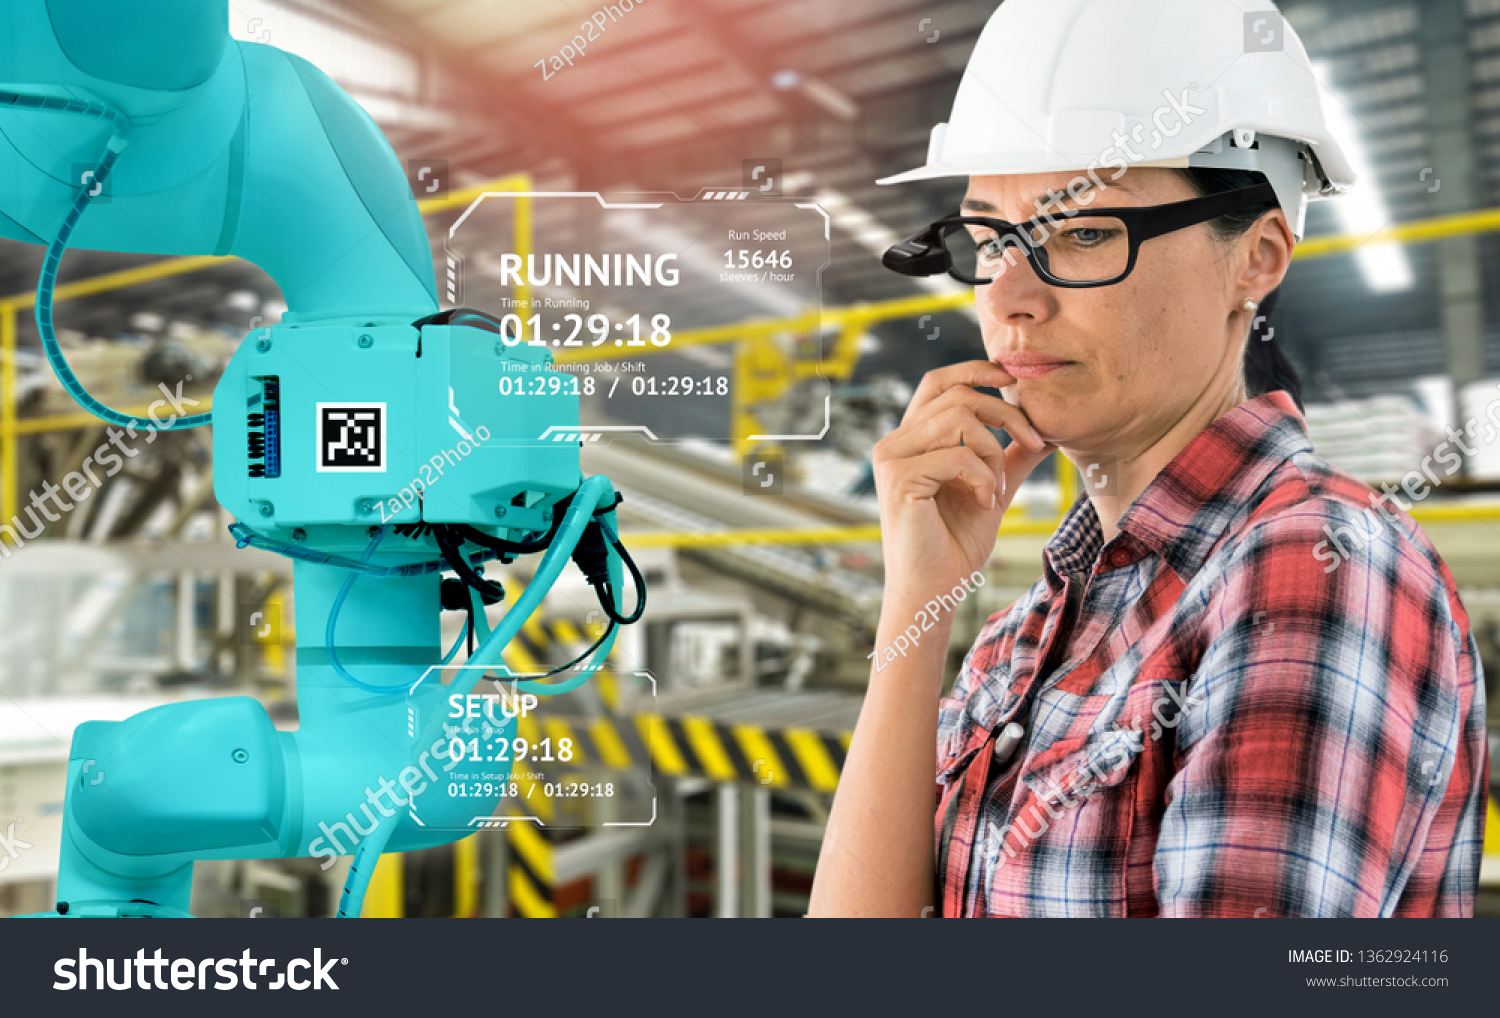 Virtual Augmented reality technology in industry 4.0. Engineer woman wearing AR glasses to see AR service,Thermal Monitoring motor for check destroy part of smart robot arm machine in smart factory. #1362924116